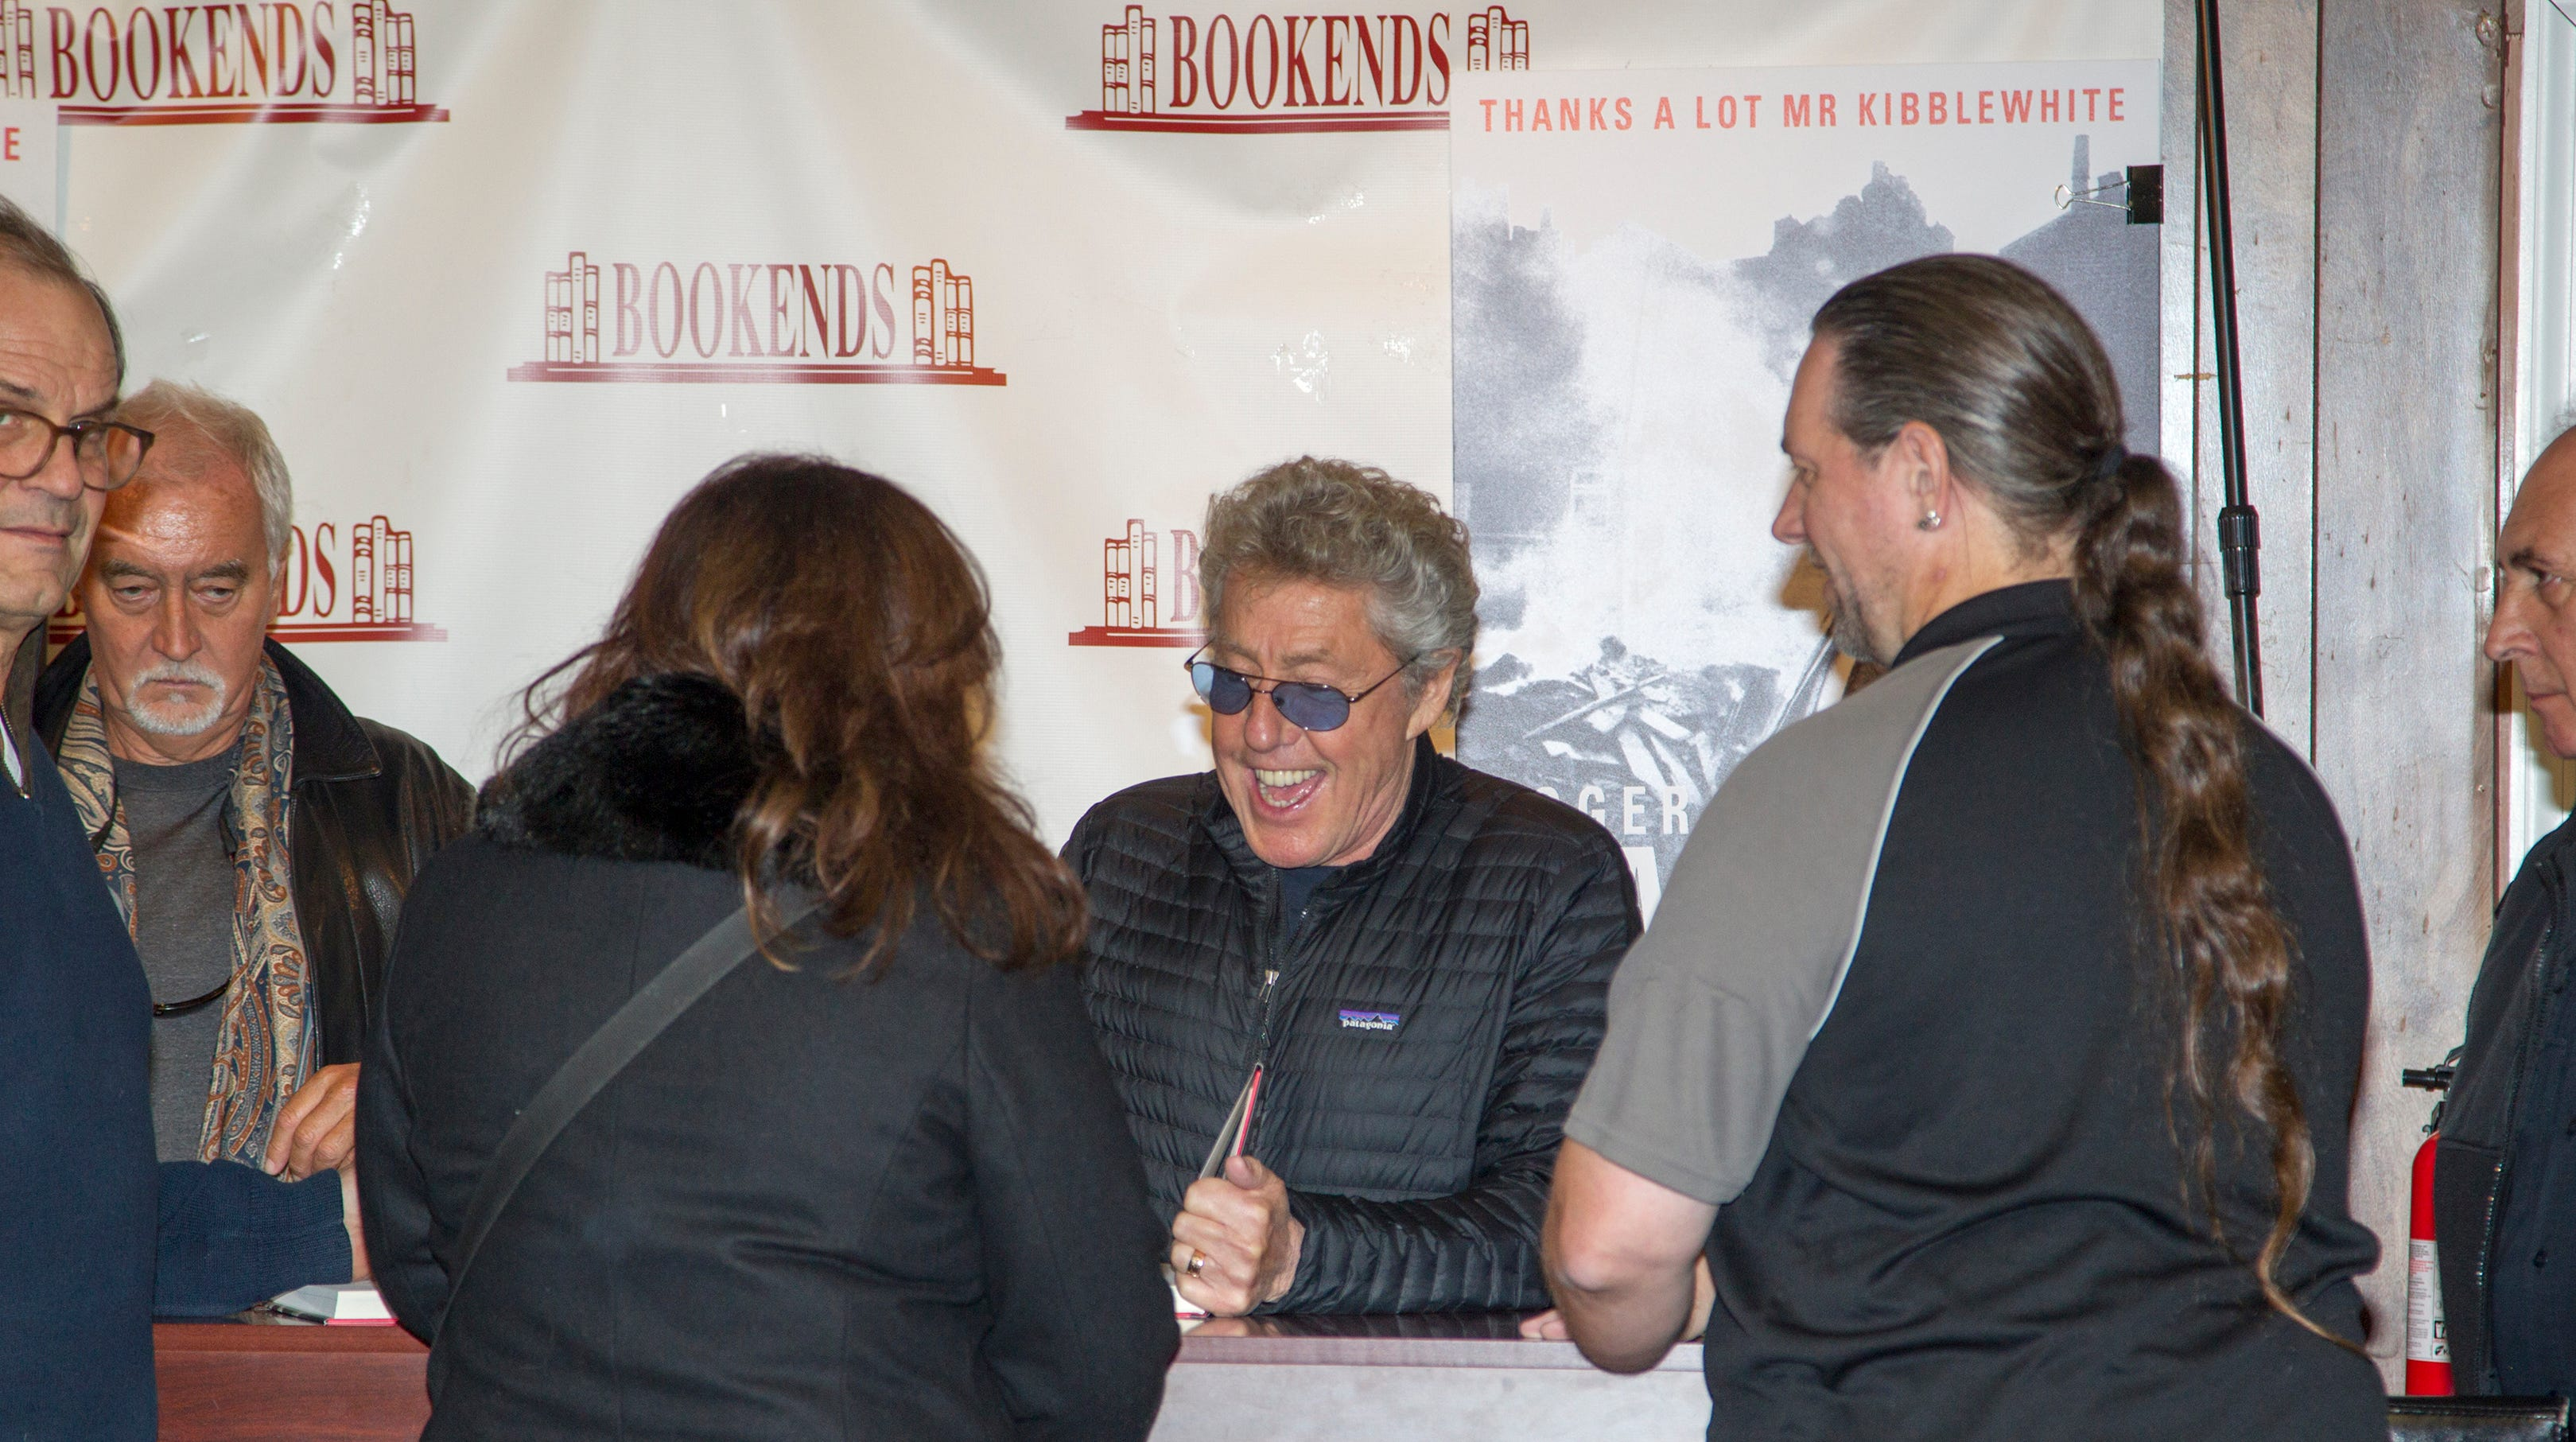 Roger Daltrey, lead singer of The Who, stopped...